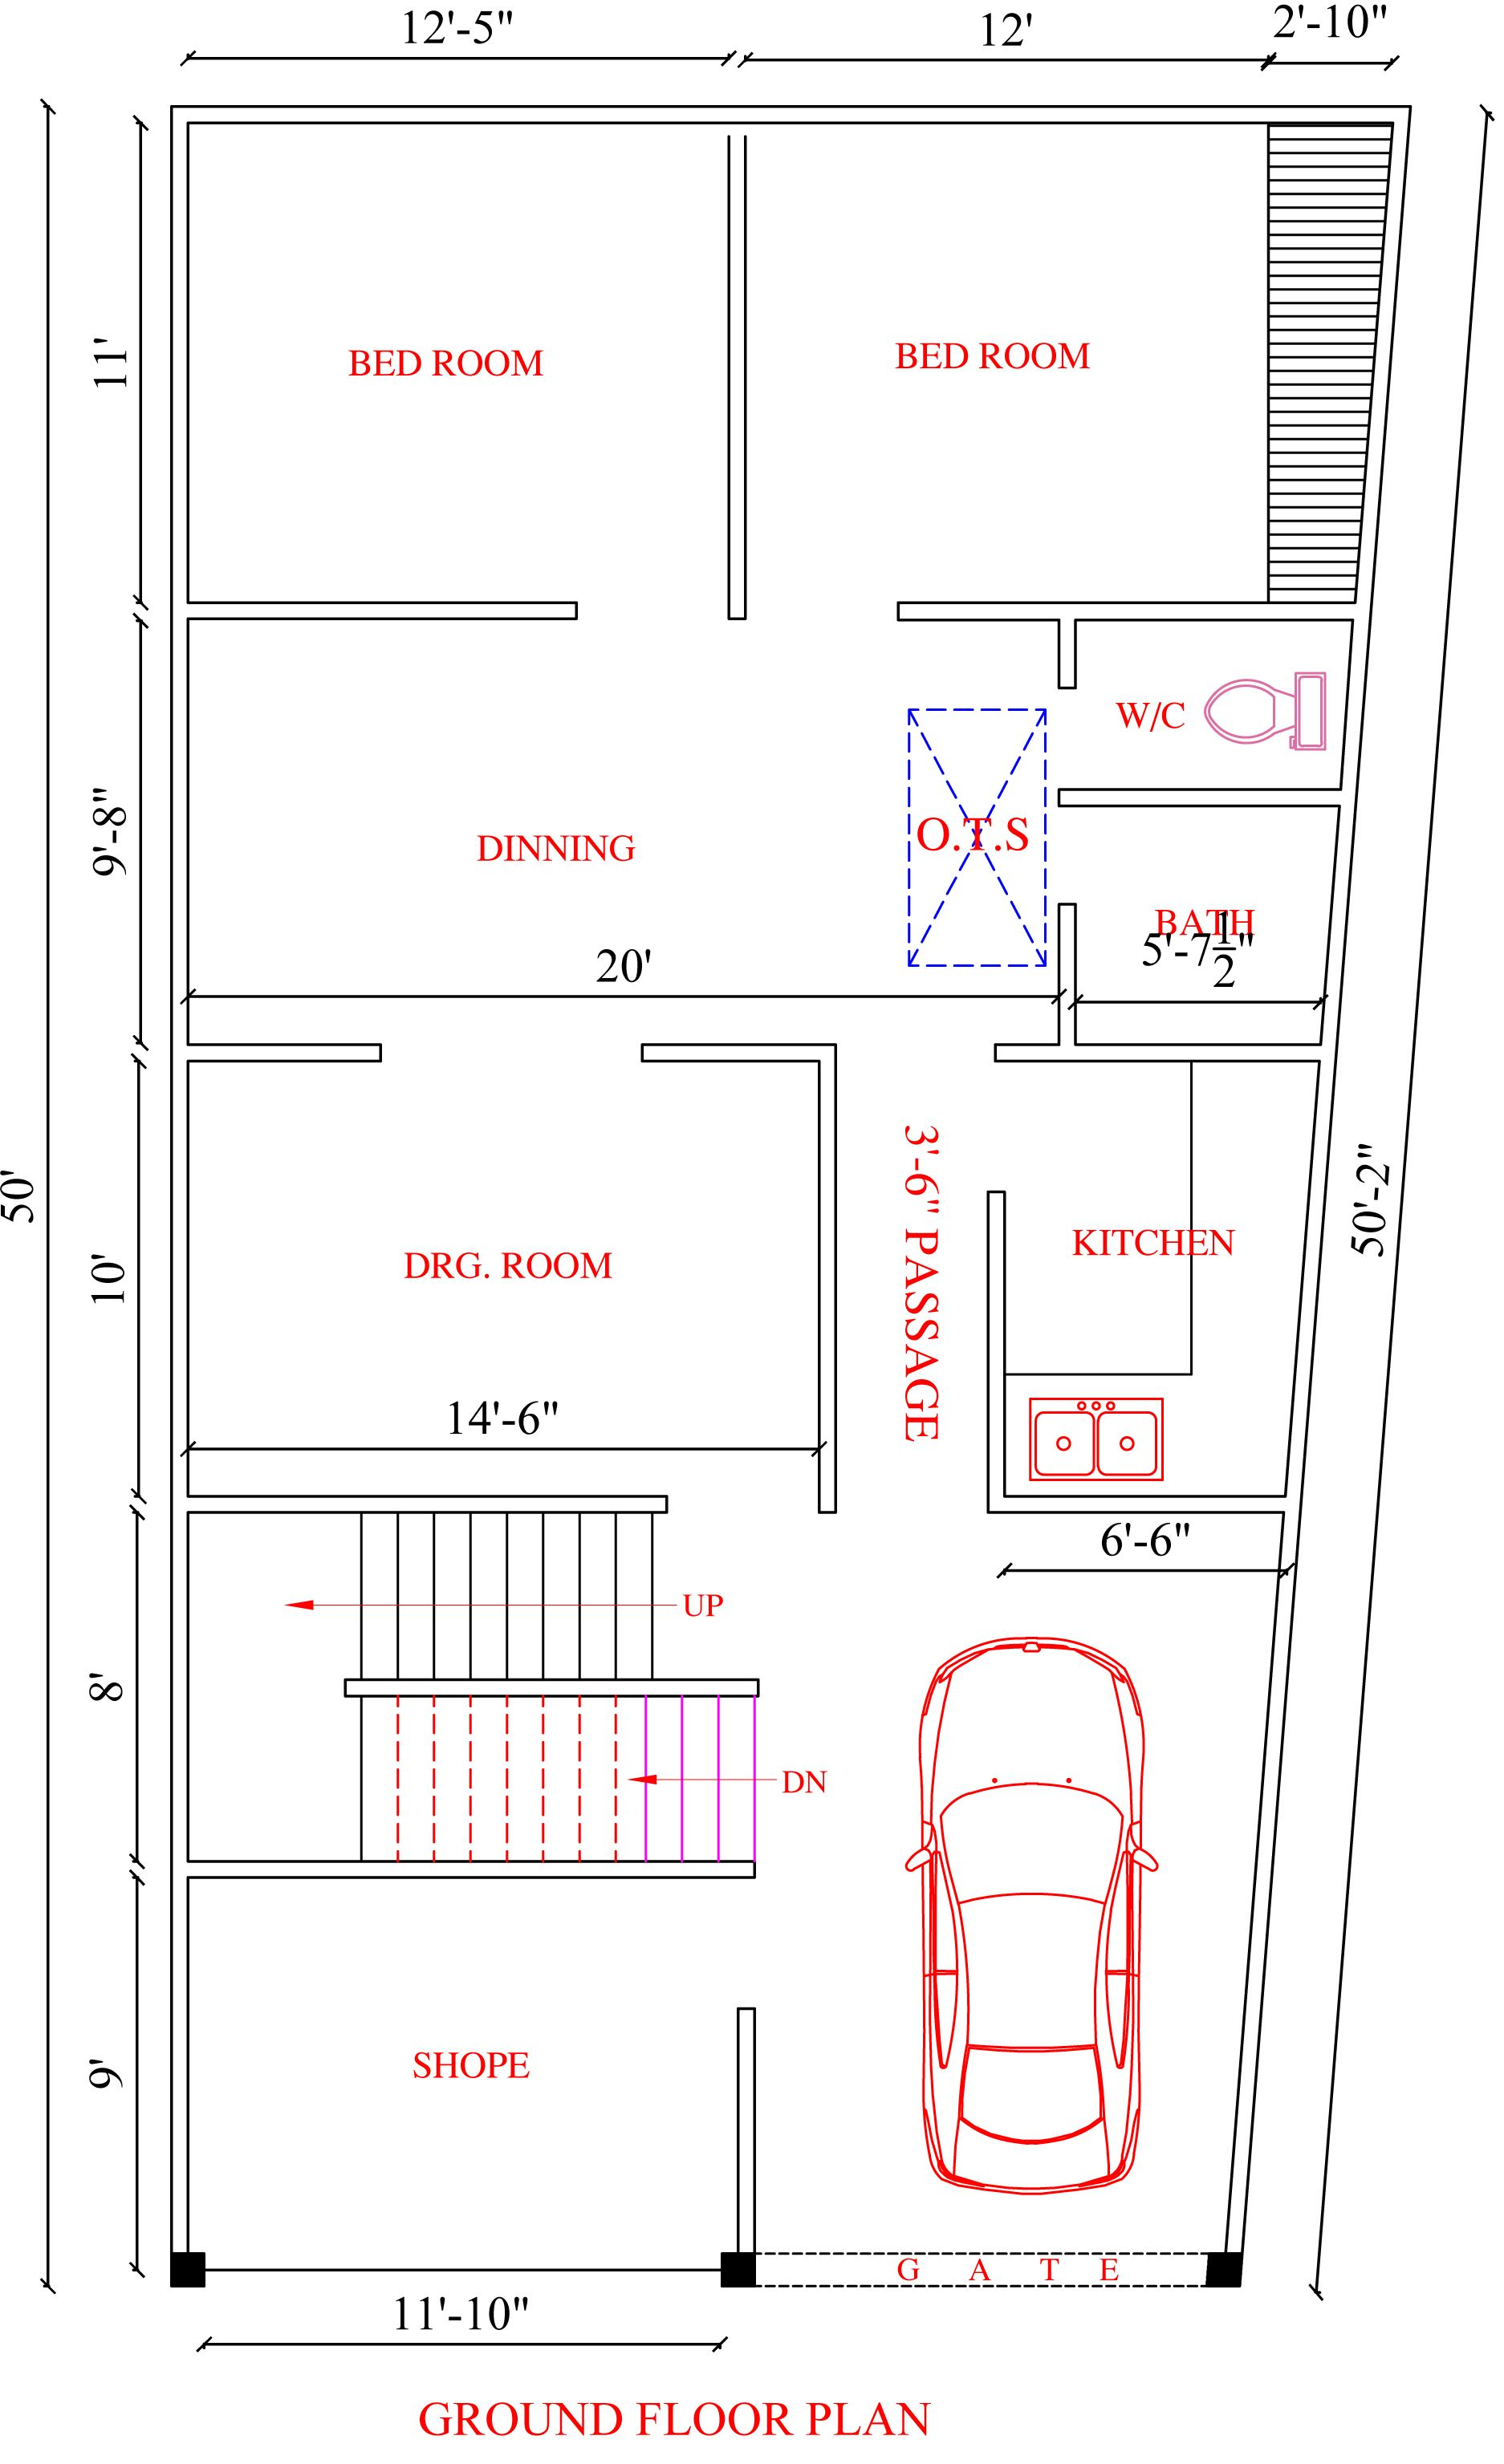 See If You Are Not Making The Same Mistake While Making The Layout Of Your Residence Inkarch Asso House Architecture Styles Bungalow House Design How To Plan